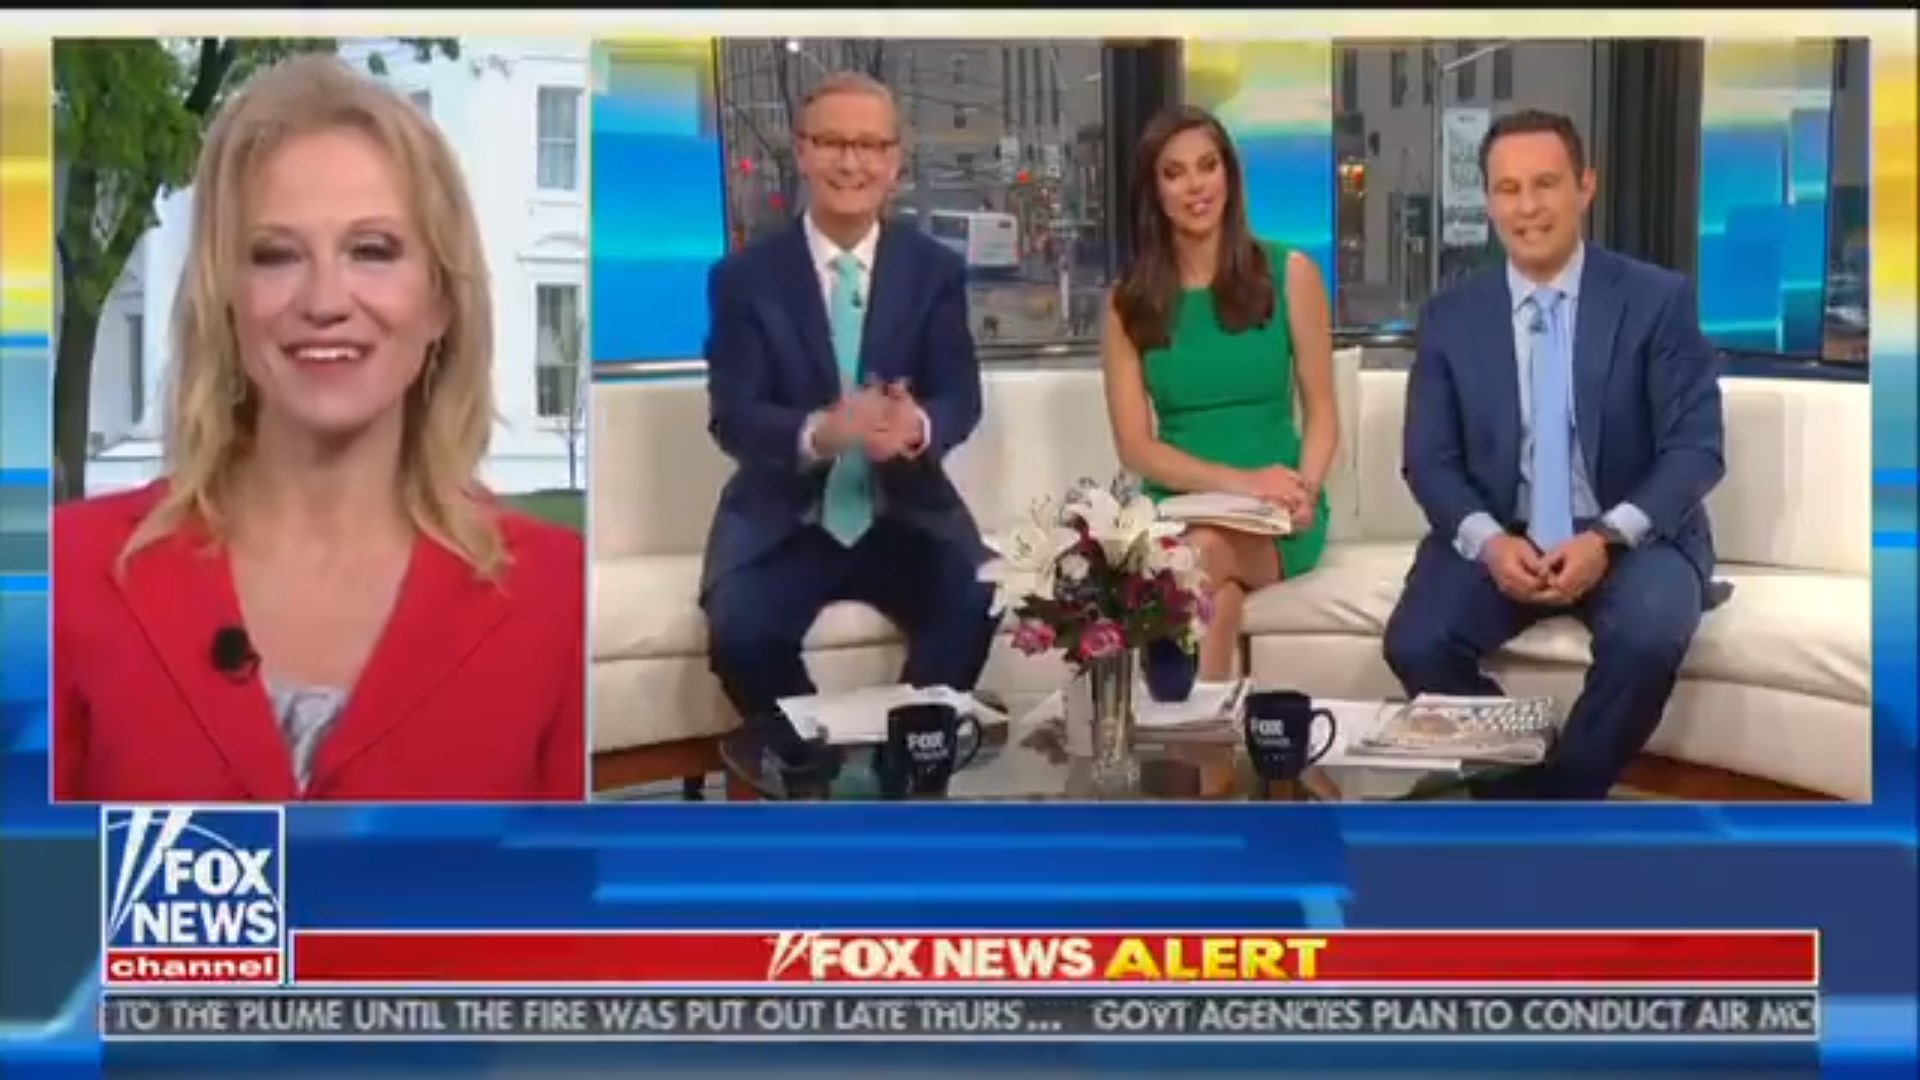 Watch Fox & Friends' Steve Doocy Shout 'Wow!' And Applaud At The Possibility Of Monthly Trump Appearances